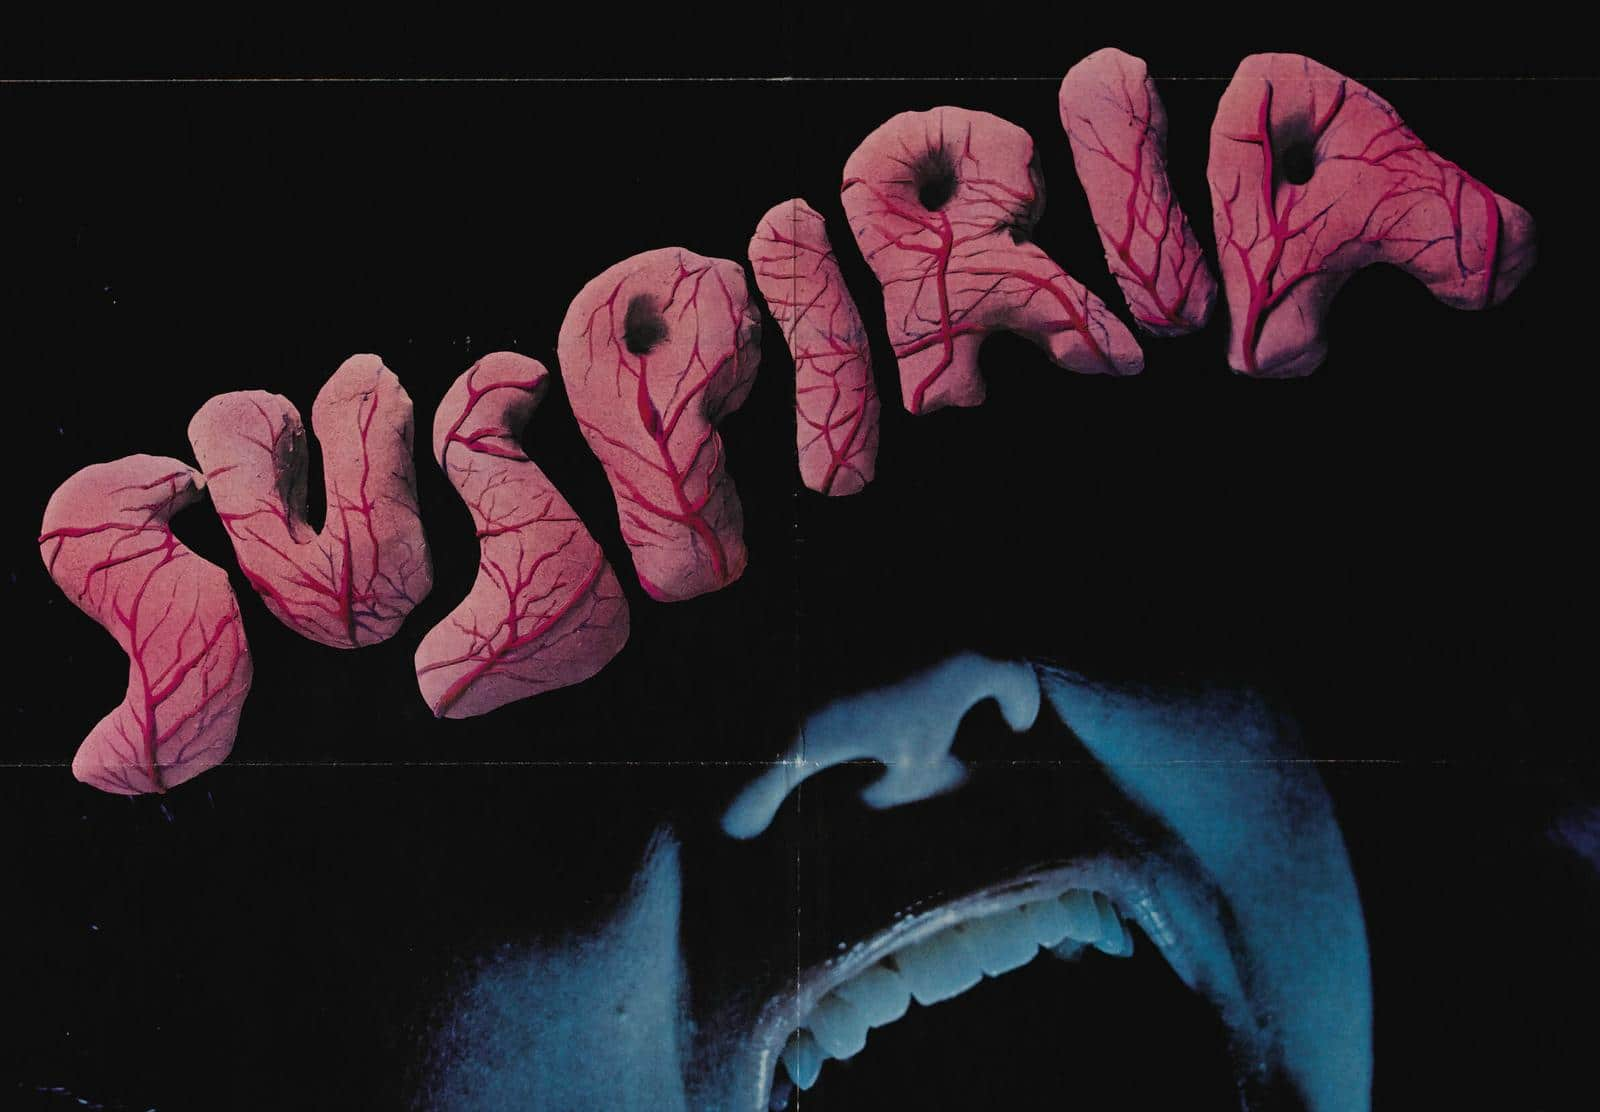 Suspiria – critique du film